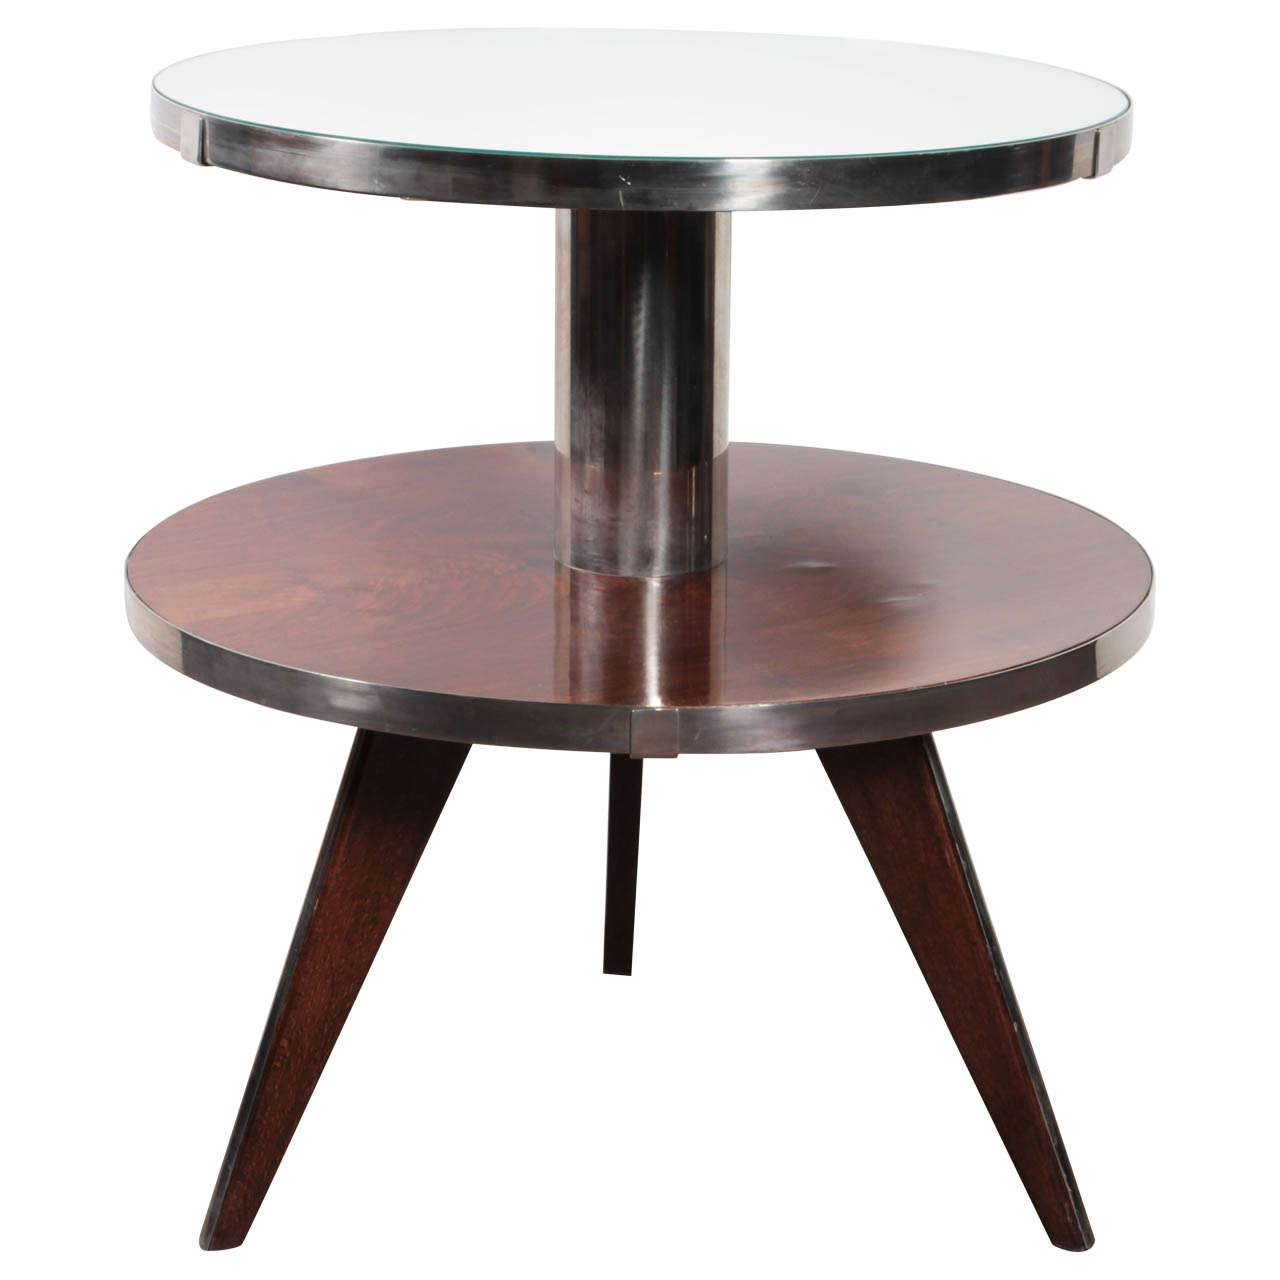 French Modern Occasional Table in Wood, Mirror, Nickelled Bronze, Maurice